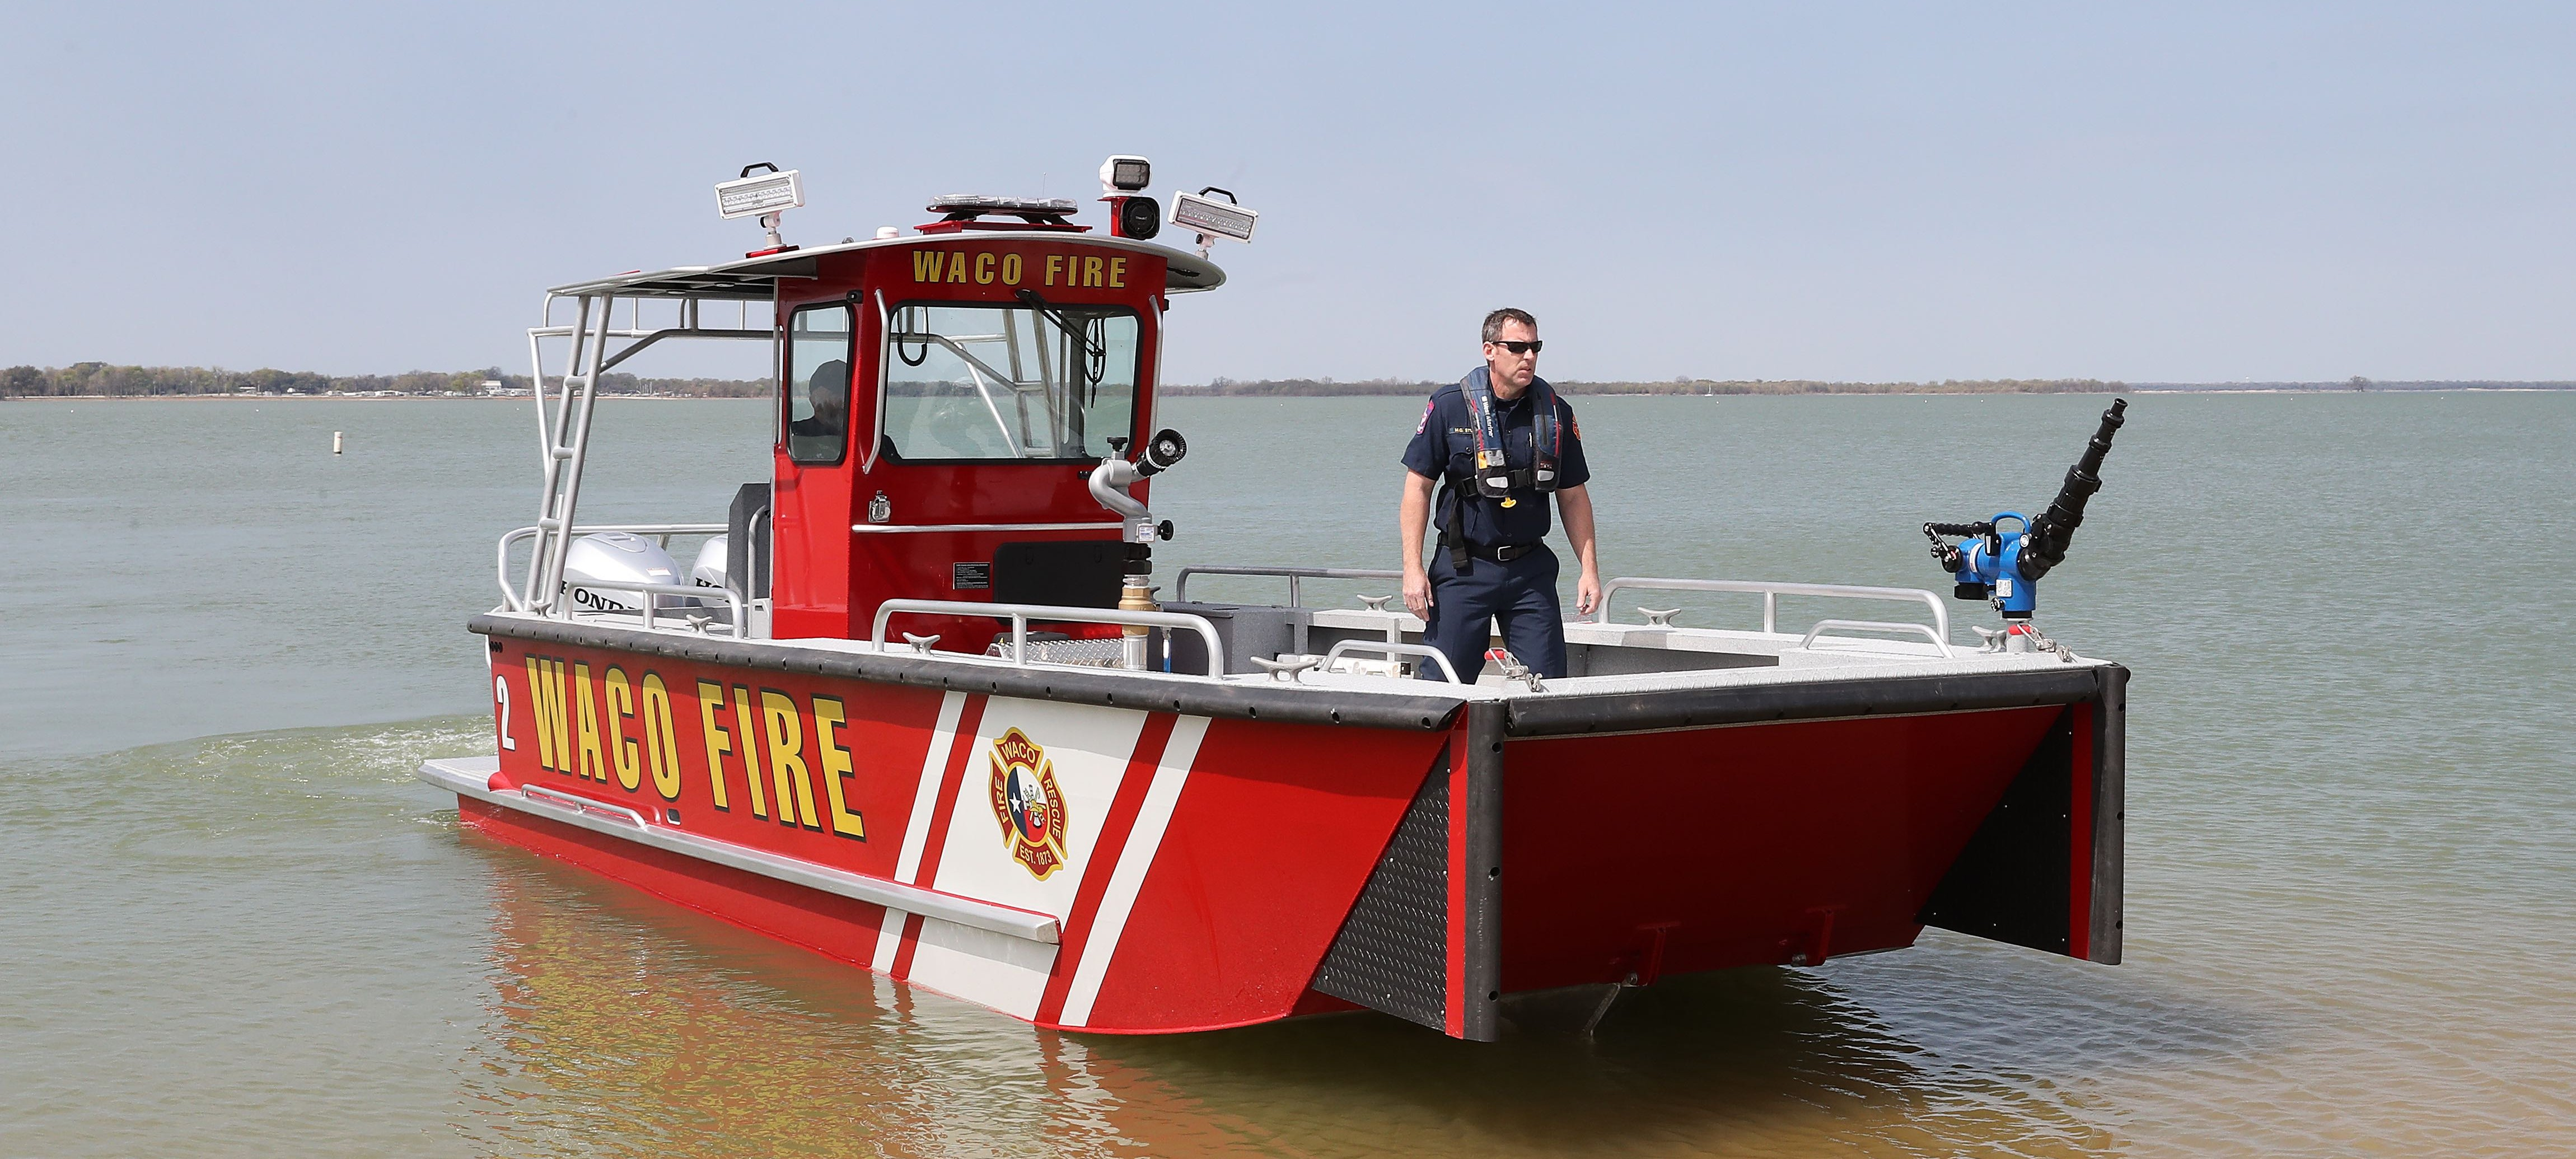 Waco Lake Assault Fireboat